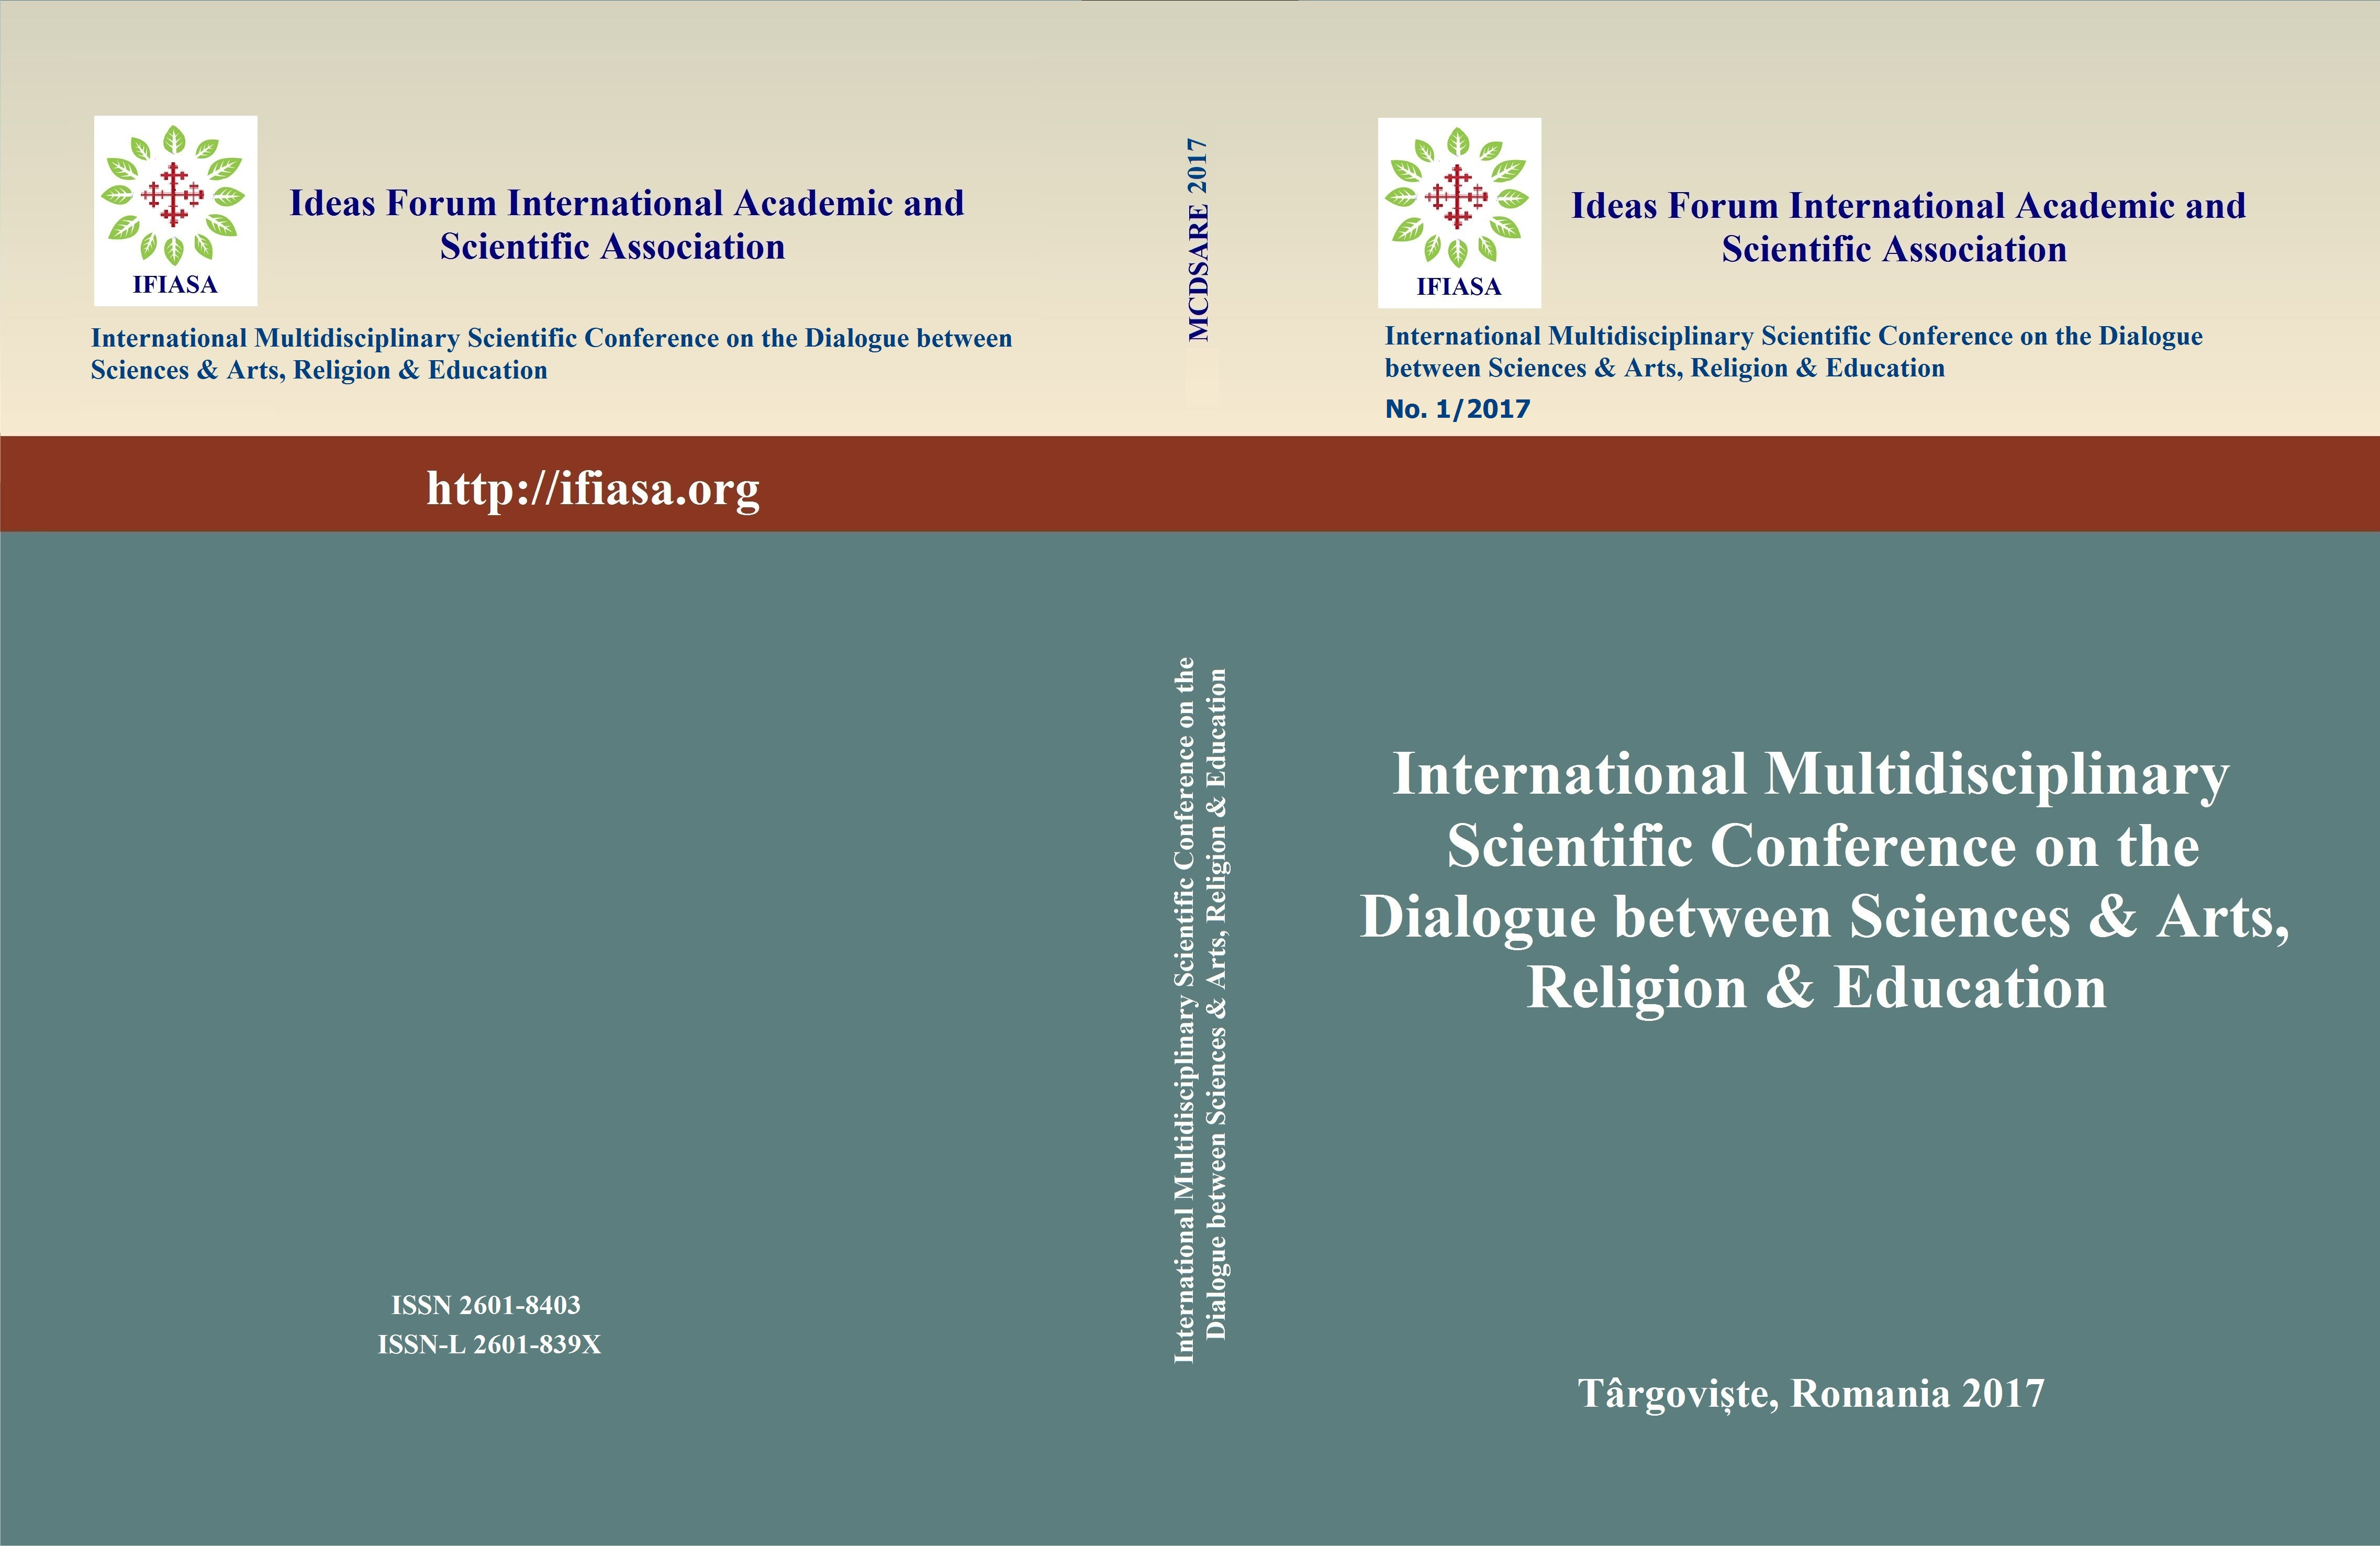 International Multidisciplinary Scientific Conference on the Dialogue between Sciences & Arts, Religion & Education Cover Image